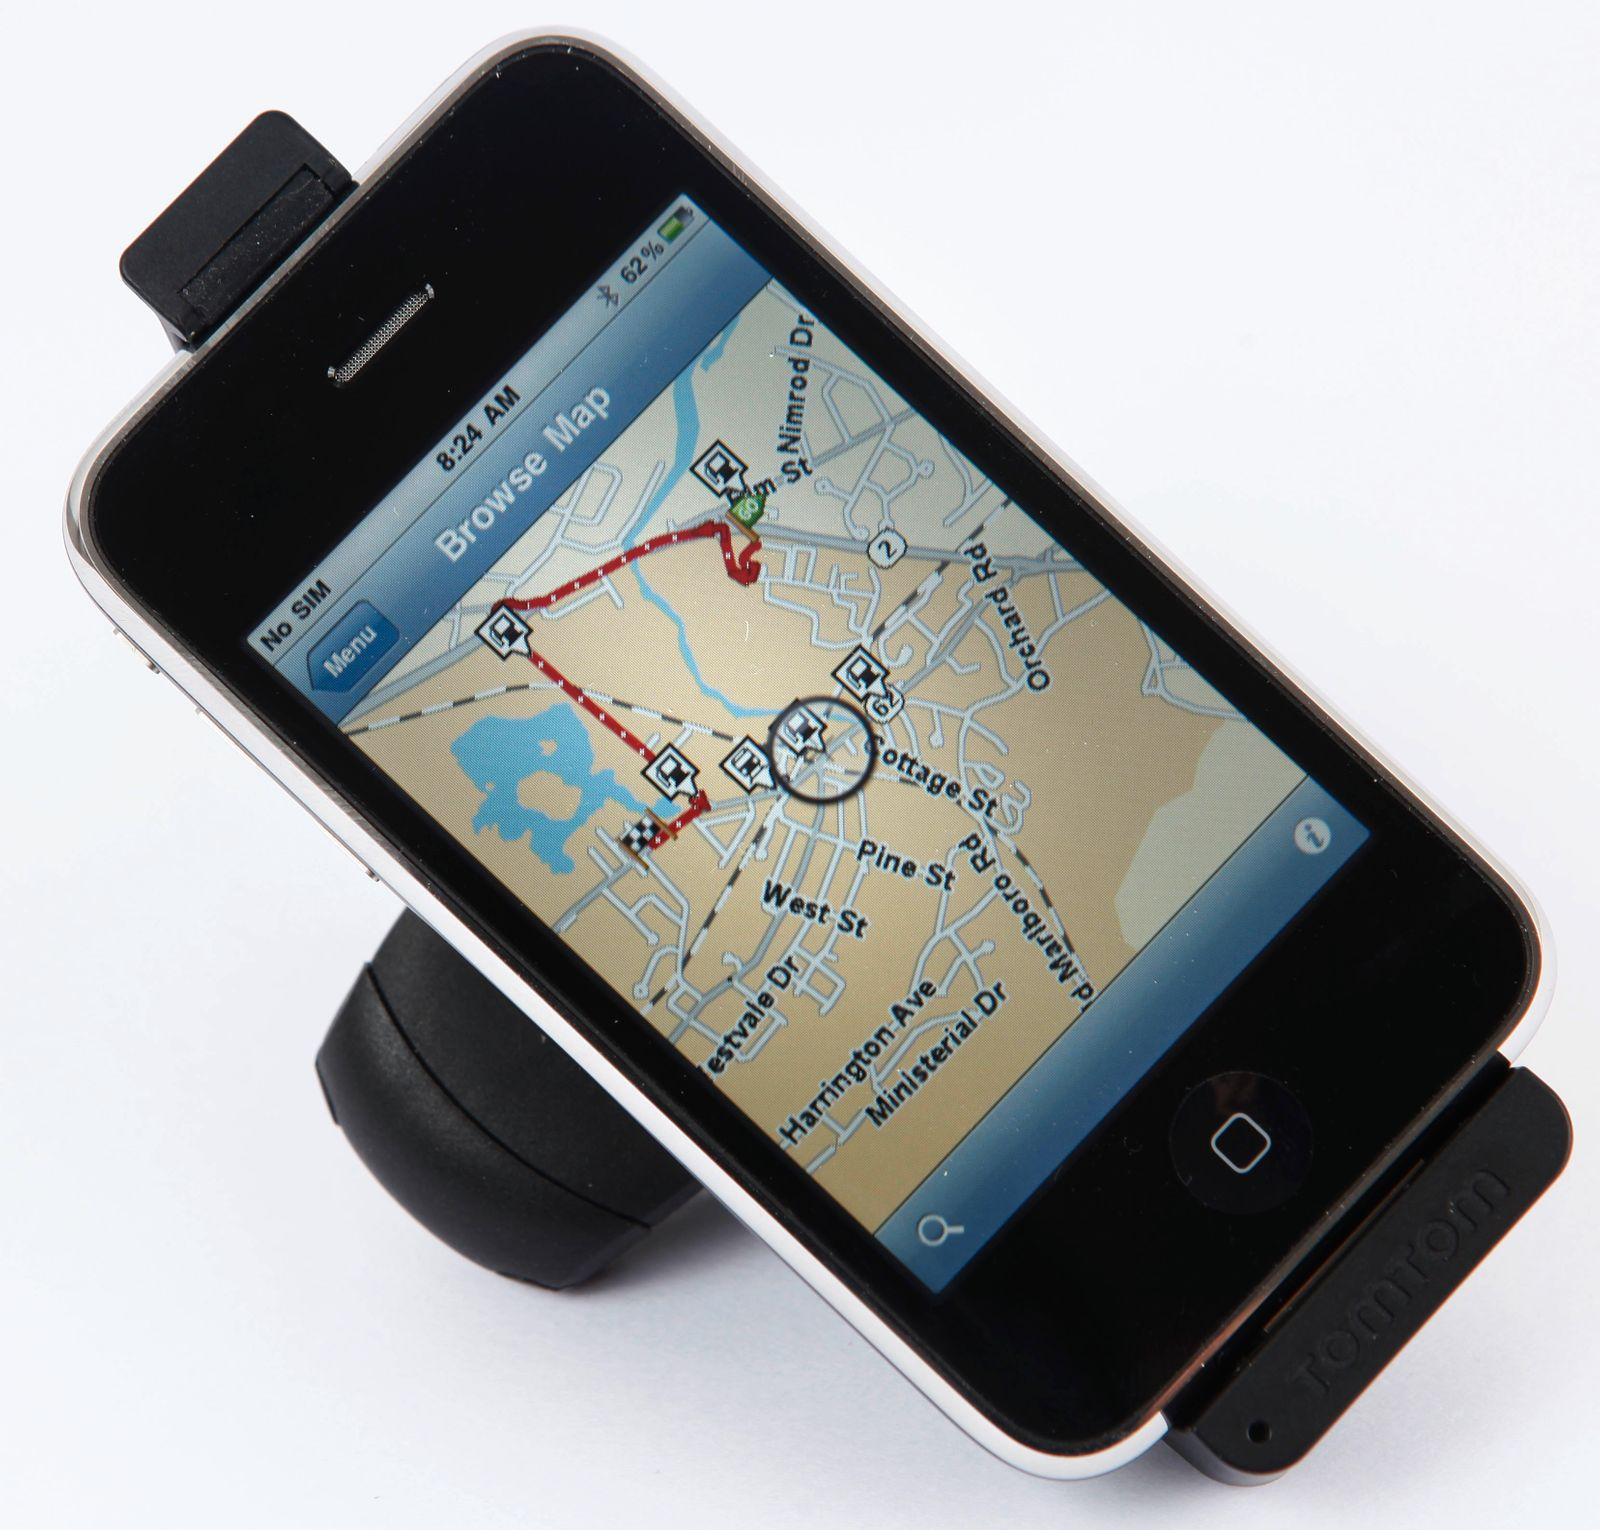 iPhone 3GS TomTom